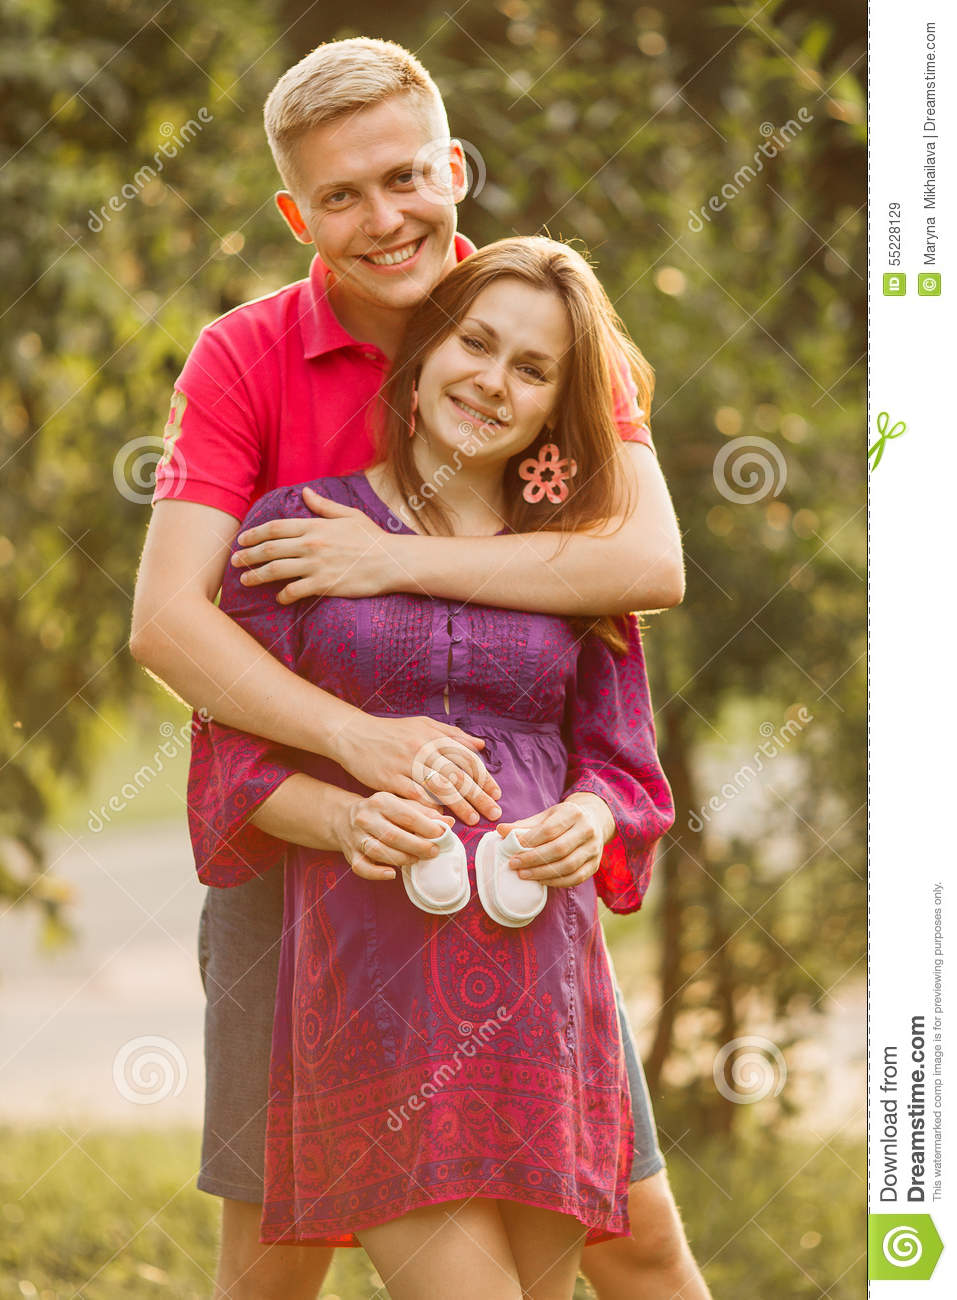 Beautiful Pregnant Woman And Man Couple In Love Stock ...